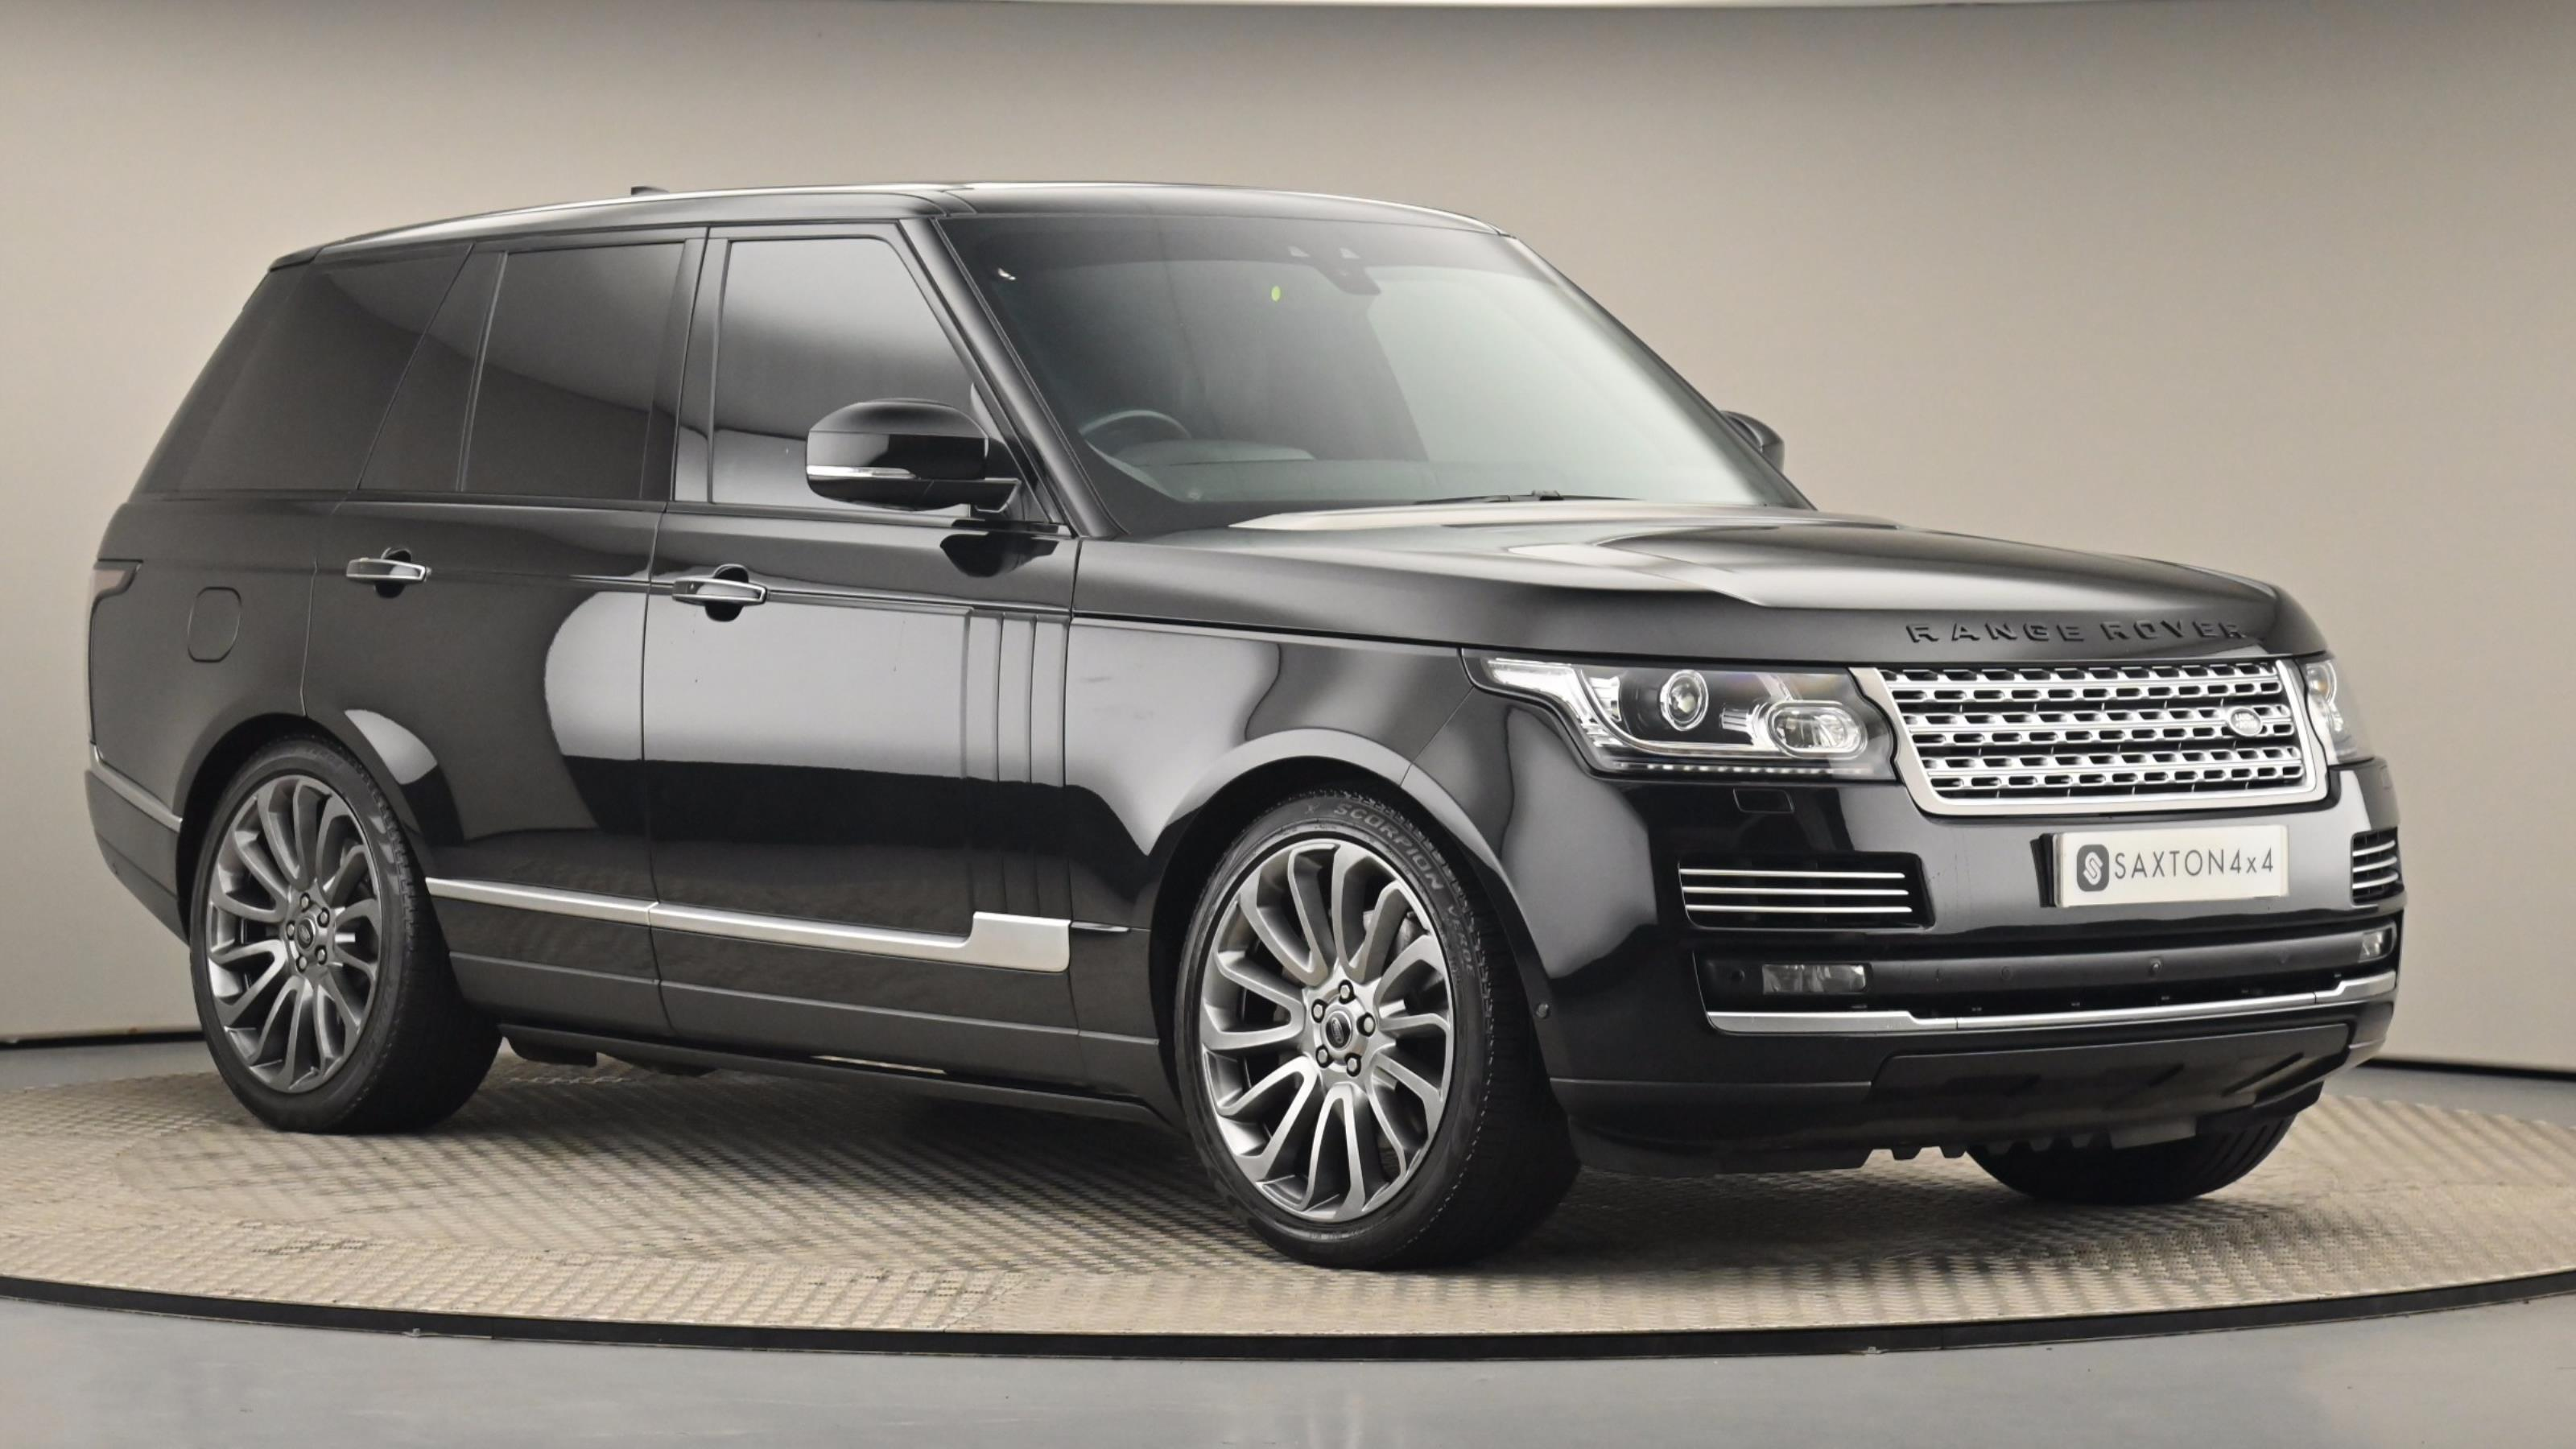 Used 2017 Land Rover RANGE ROVER 4.4 SDV8 Autobiography 4dr Auto at Saxton4x4